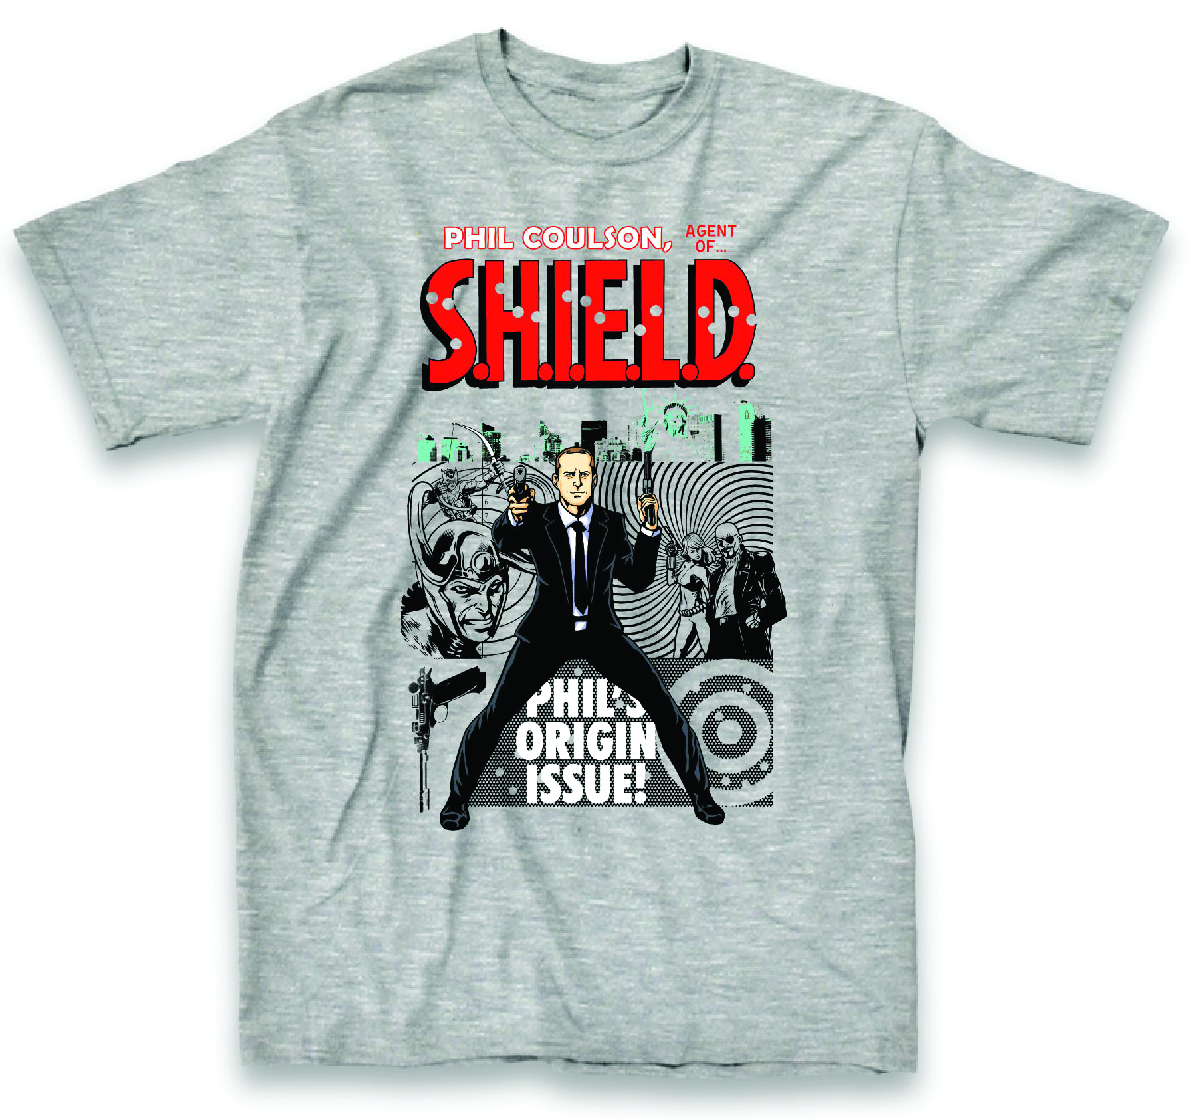 SHIELD AGENT PHIL COULSON HEATHER T/S LG